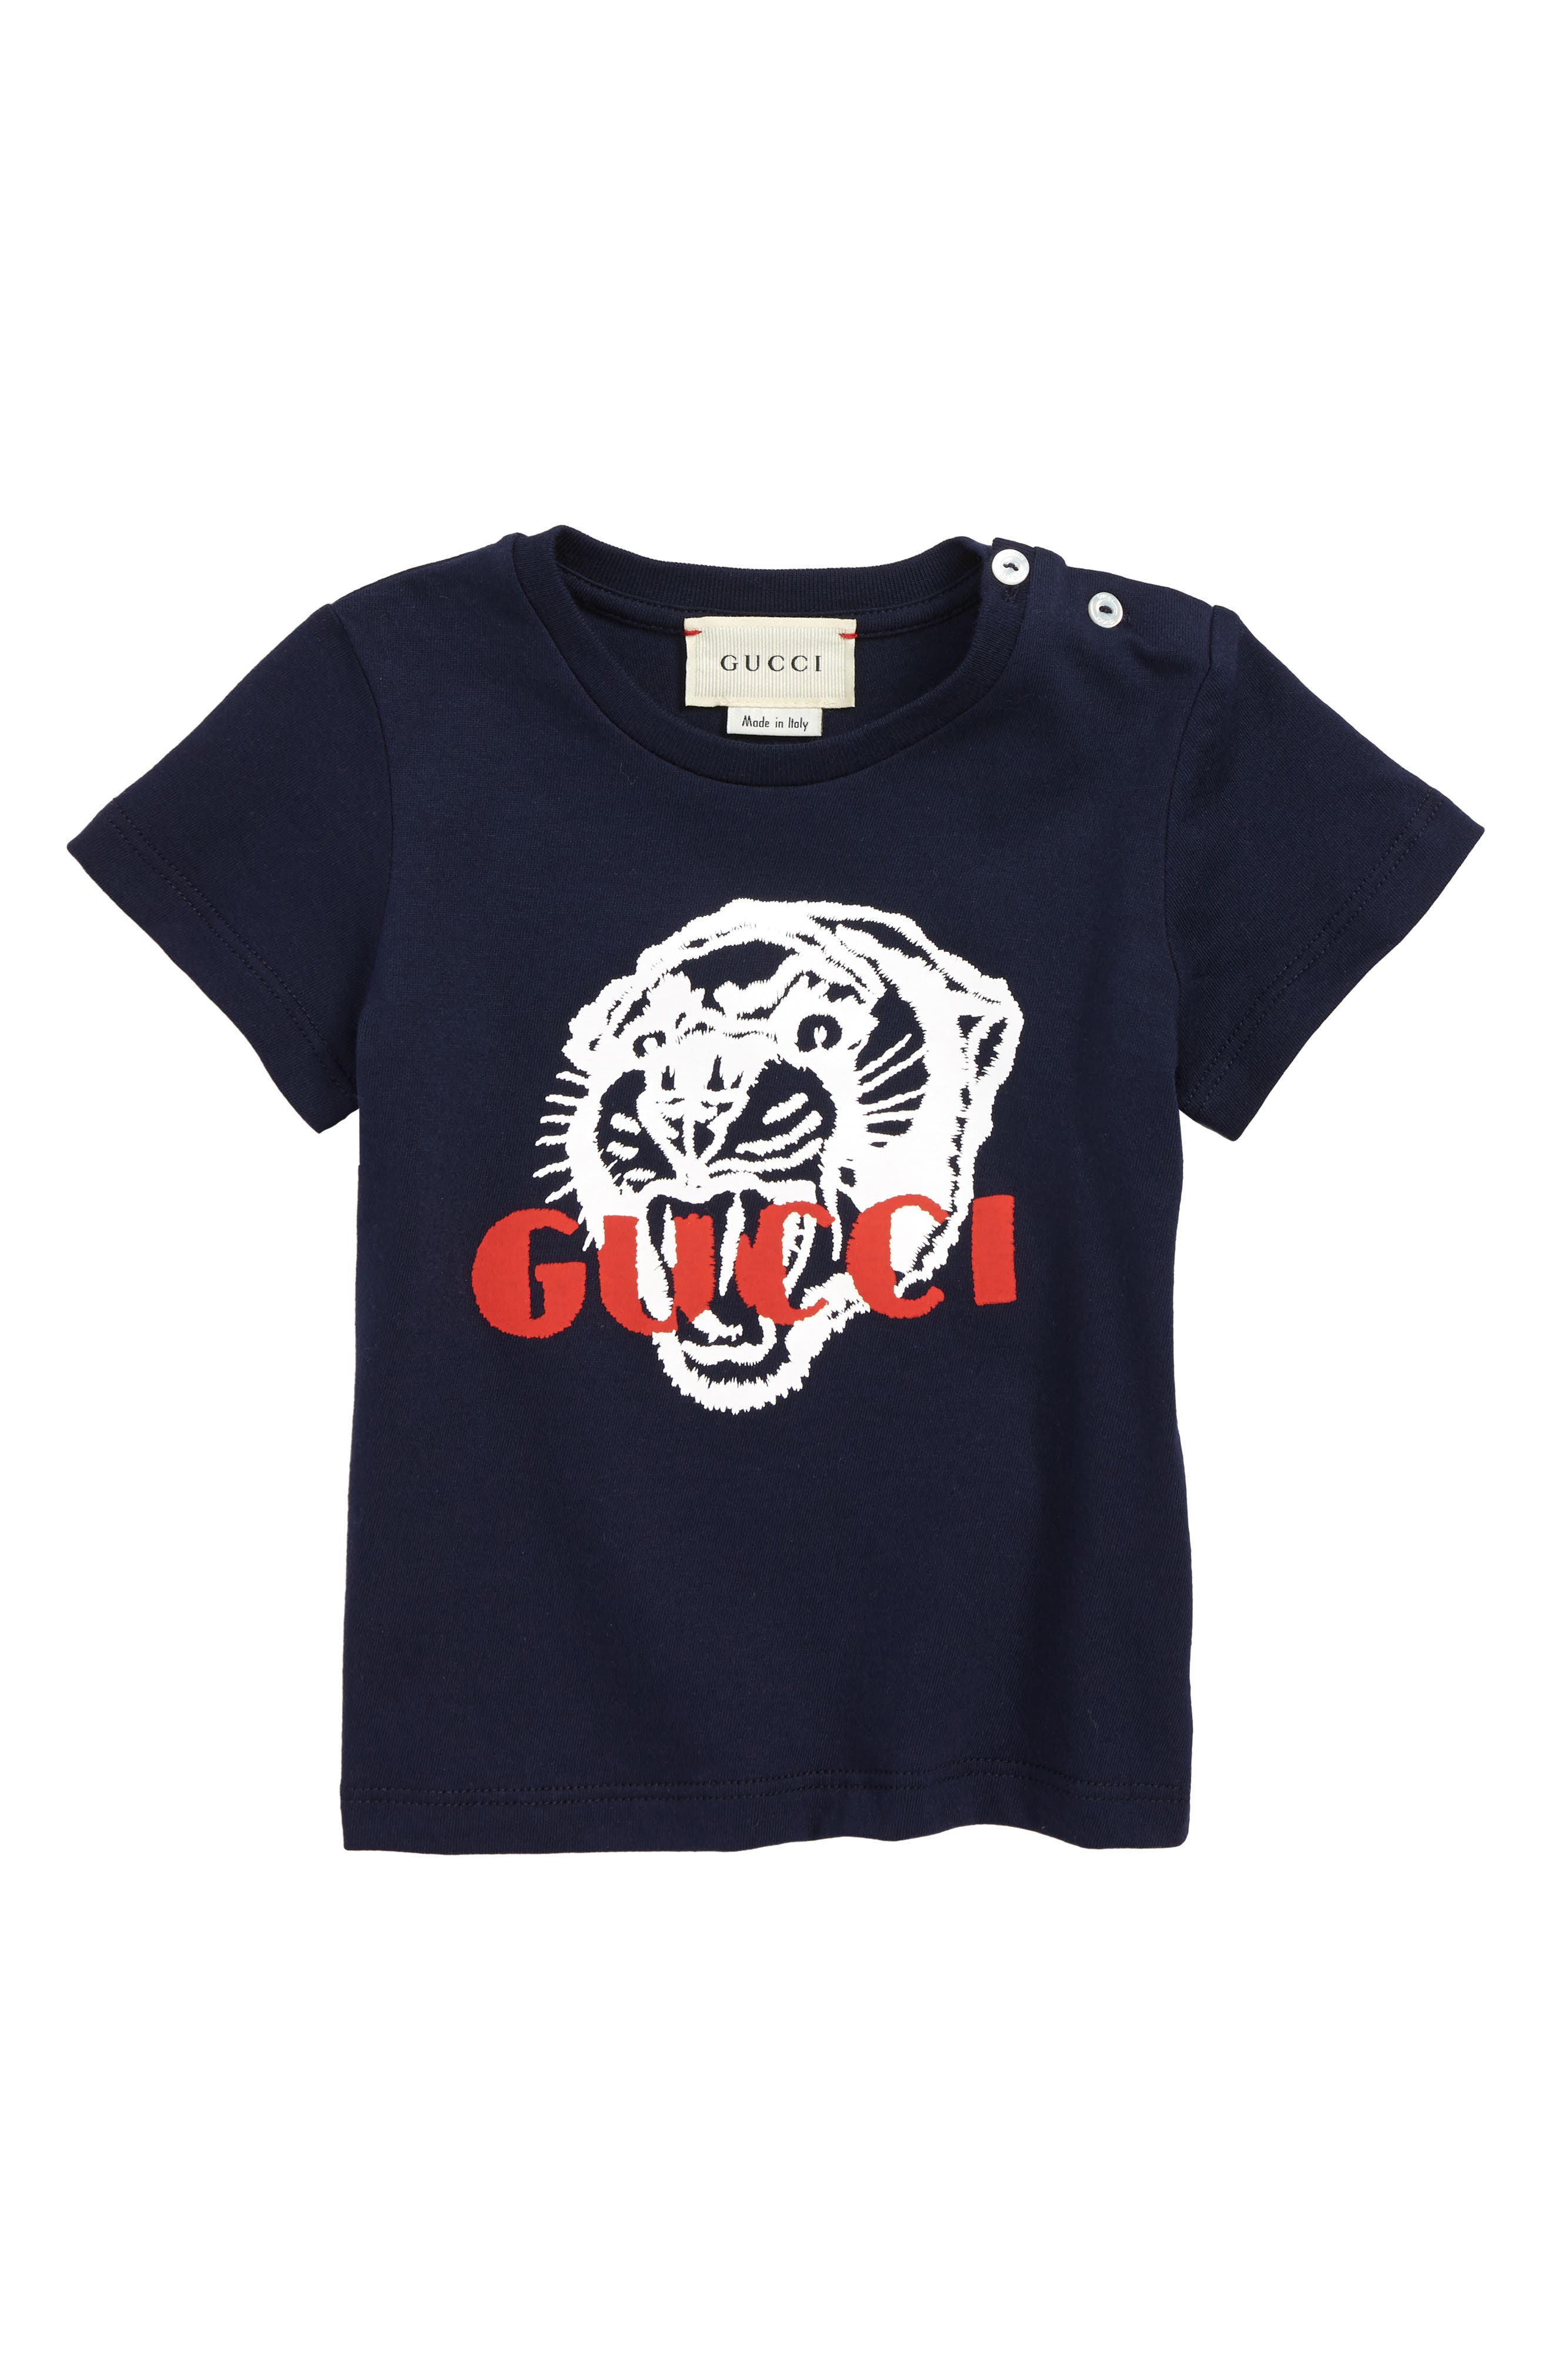 GUCCI, Graphic T-Shirt, Main thumbnail 1, color, OLTREMARE/ RED